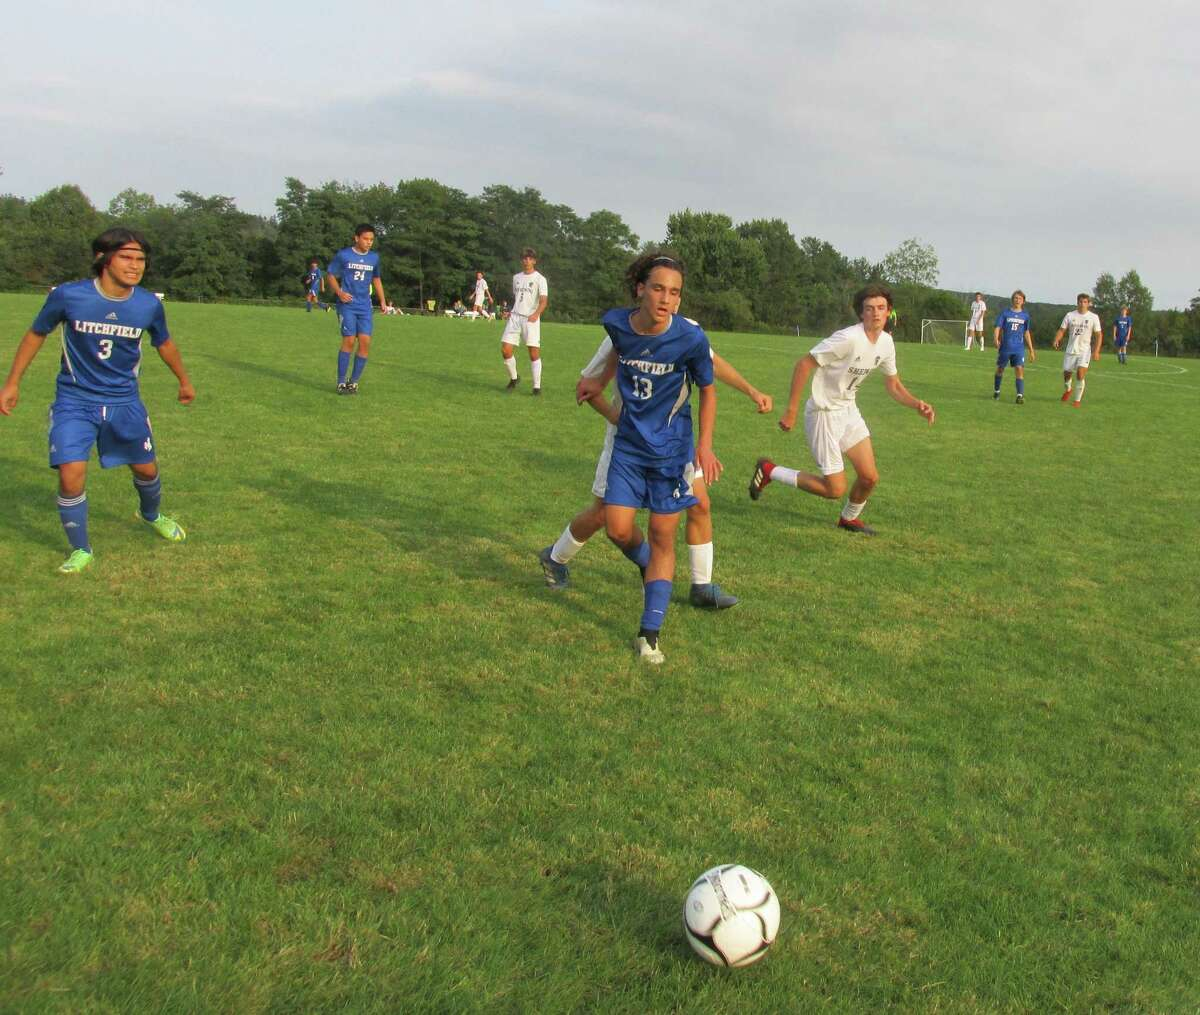 Early-season Litchfield cramps and lots of Shepaug substituting played a part in the Spartans' overtime win at Plum Hill Field Tuesday afternoon.